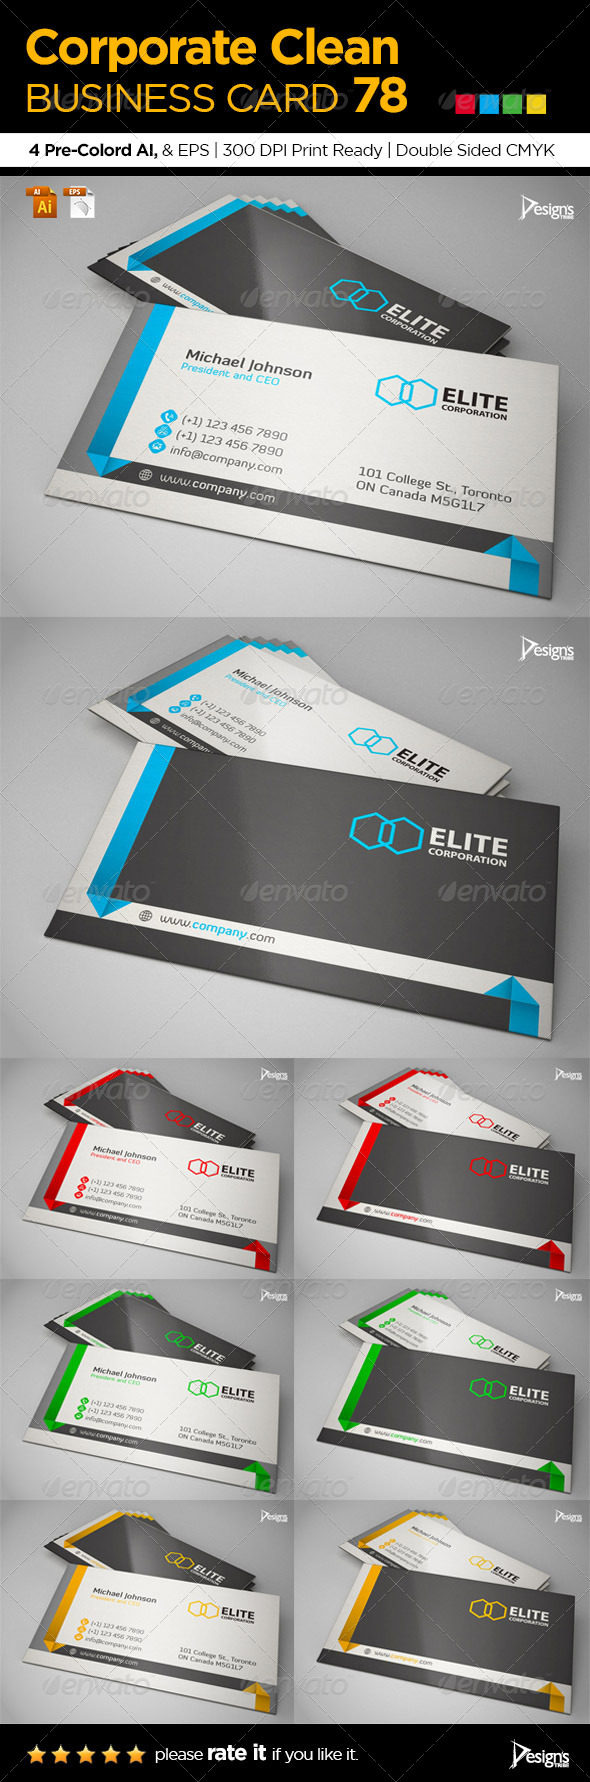 GraphicRiver Corporate Clean Business Card 78 6702707